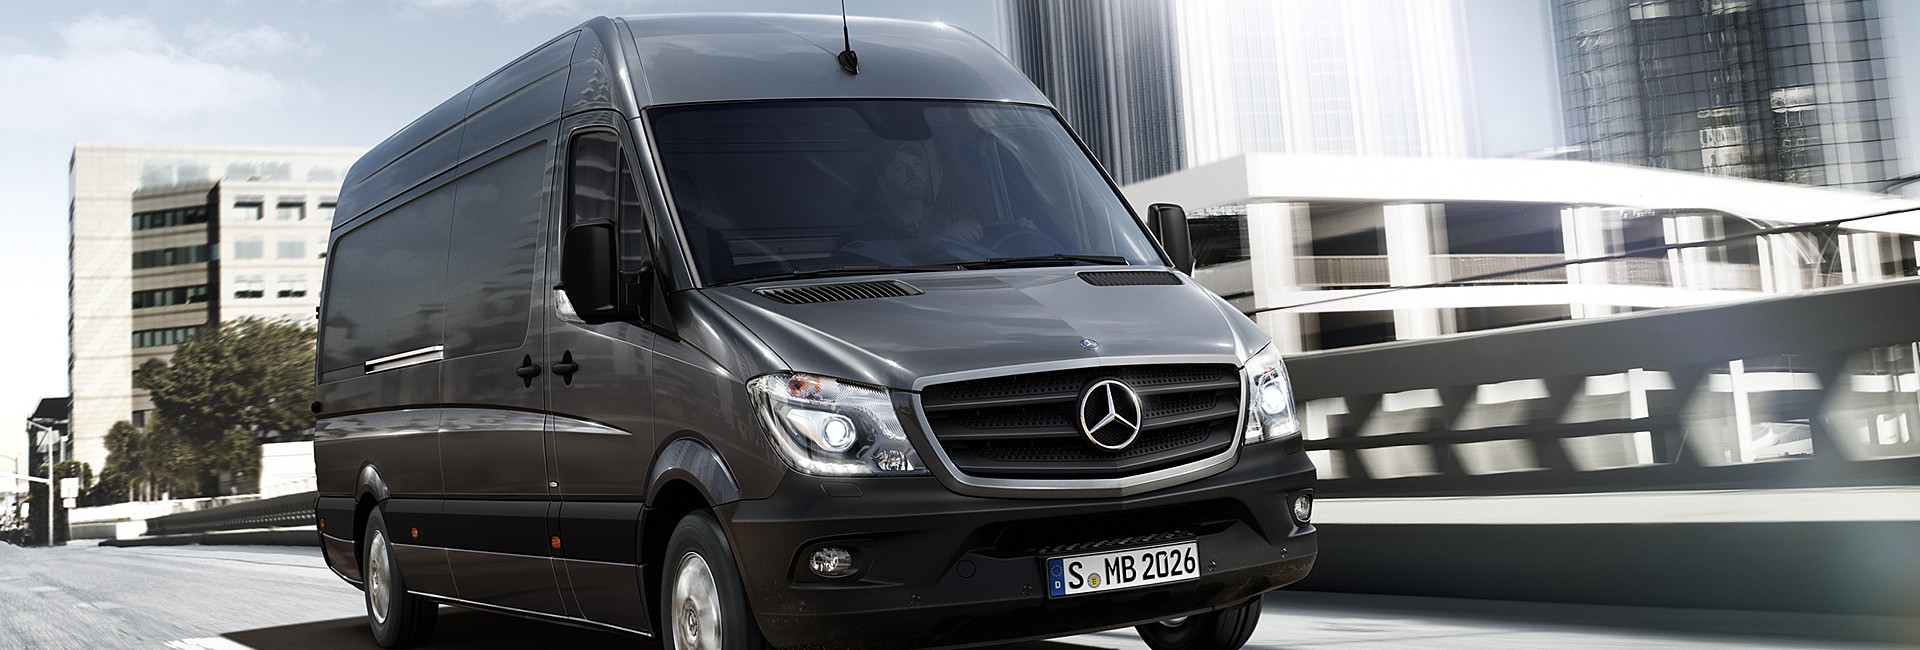 sprinter fourgon mercedes benz saga. Black Bedroom Furniture Sets. Home Design Ideas